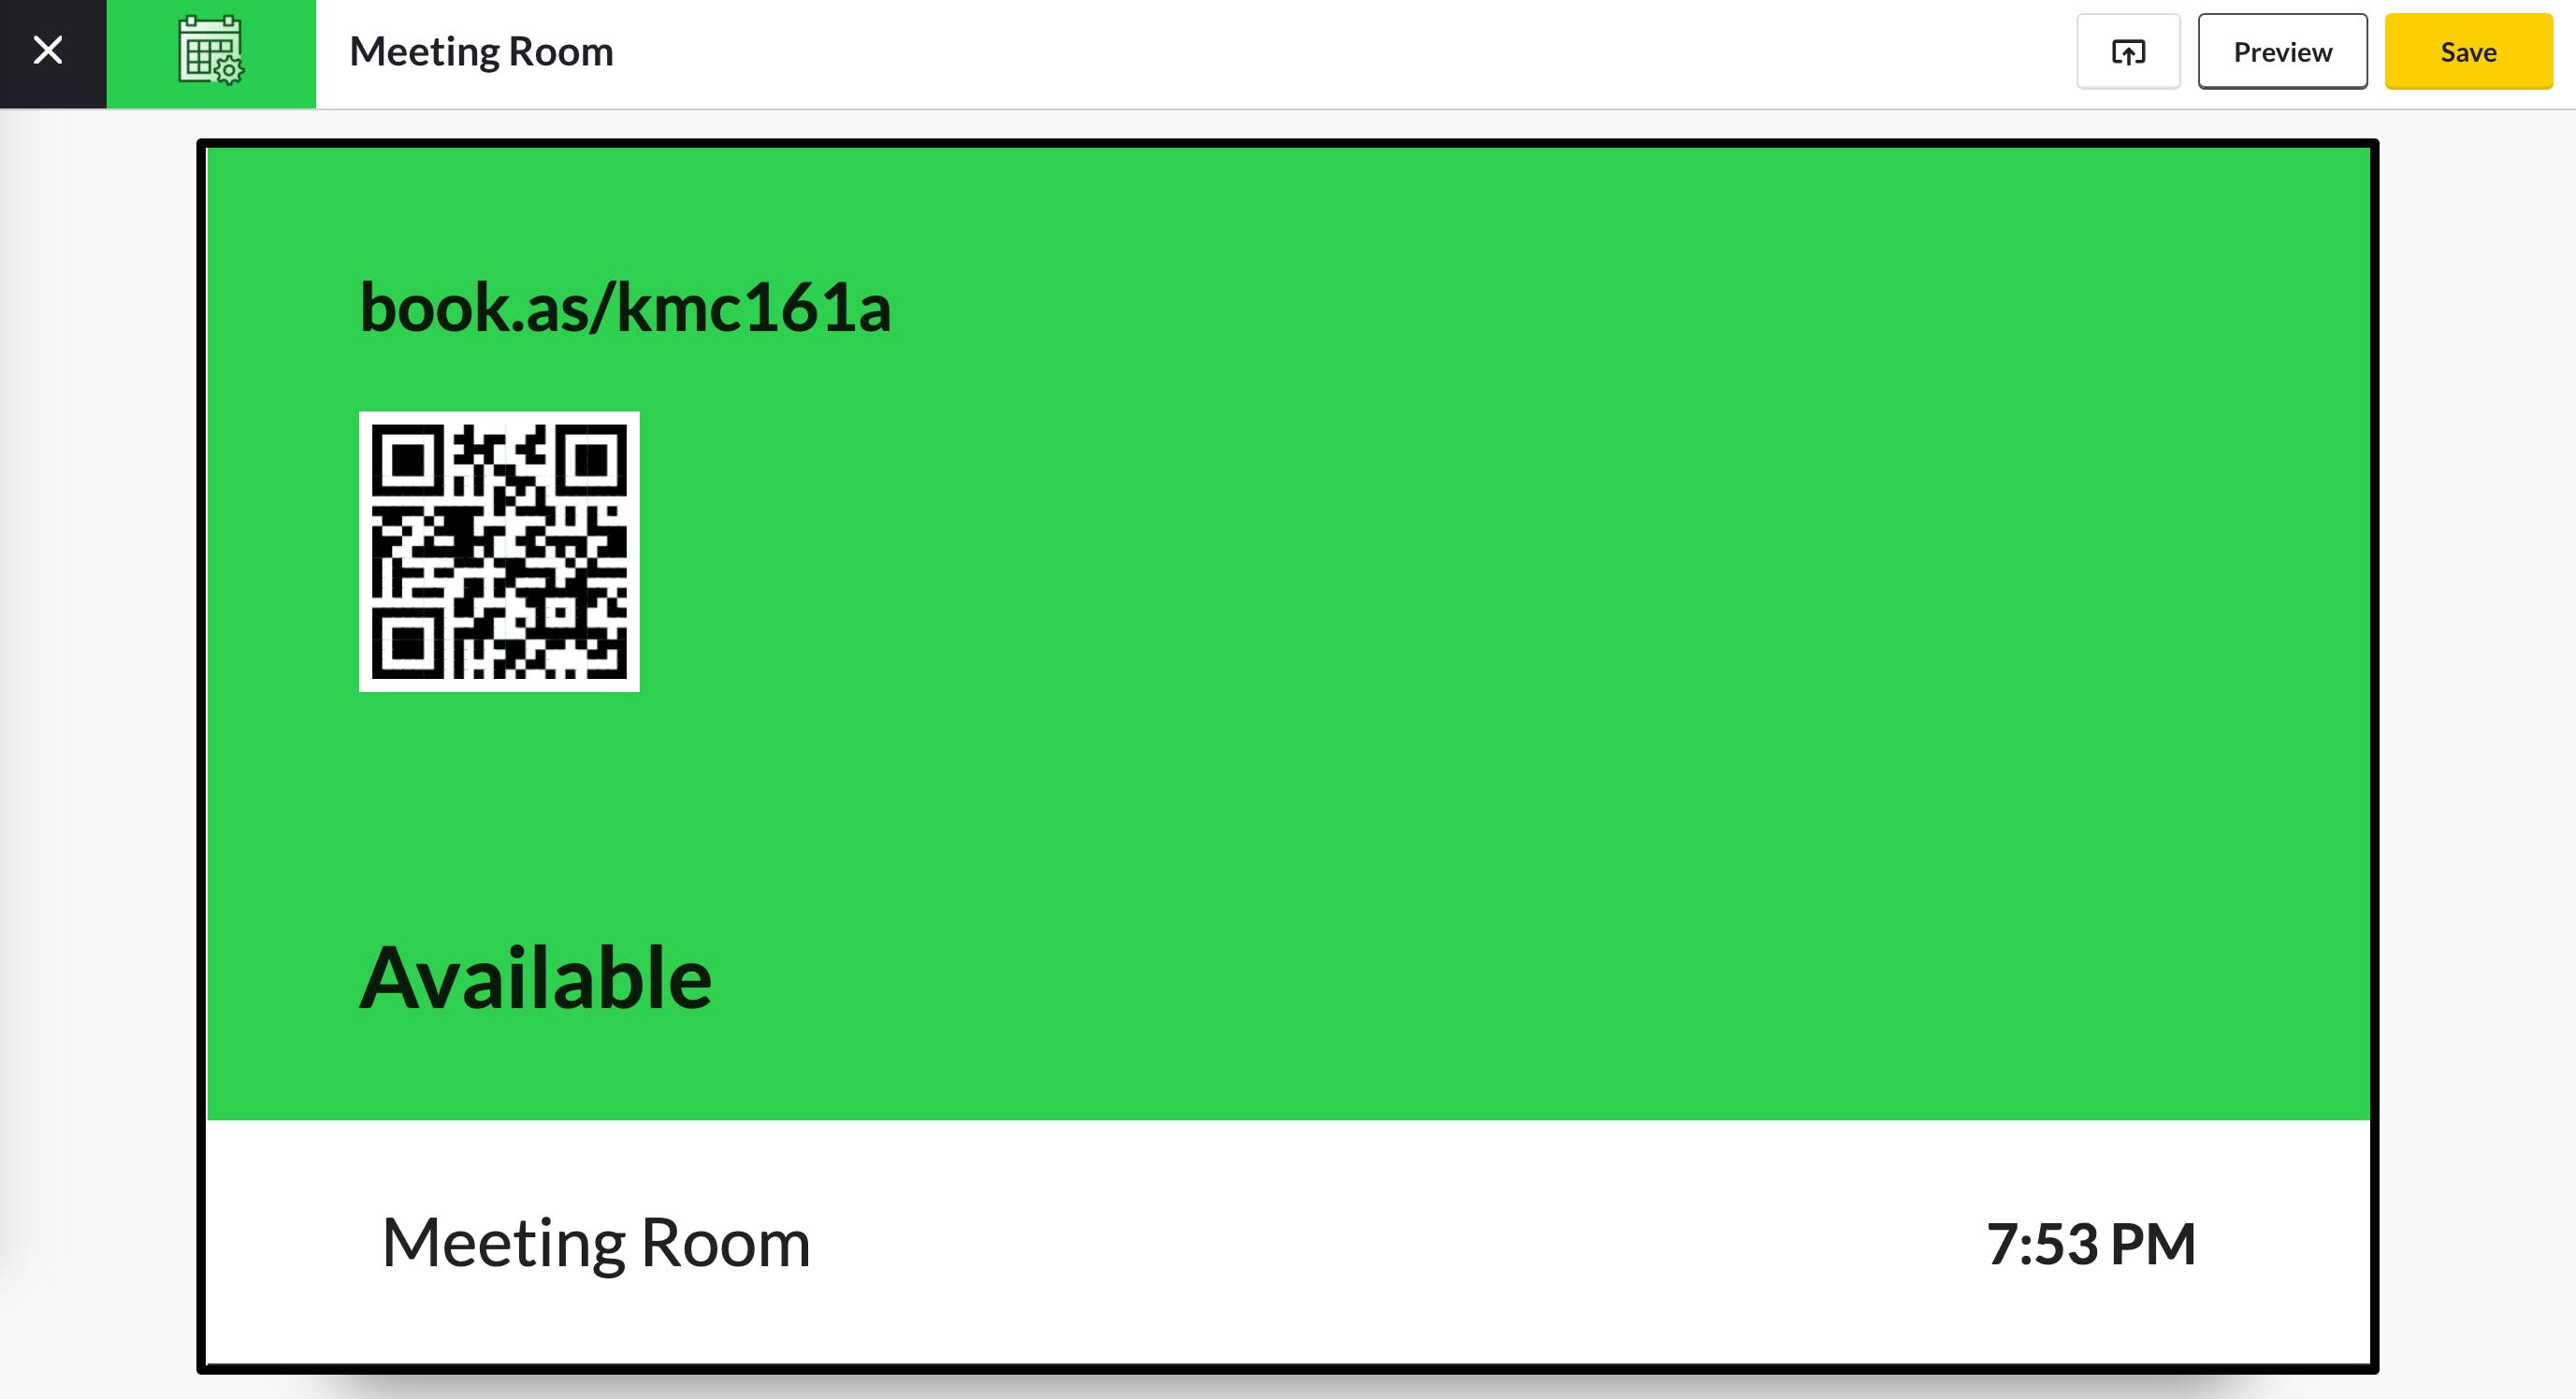 Meeting Room App Guide - Room available 5.13.2020.png